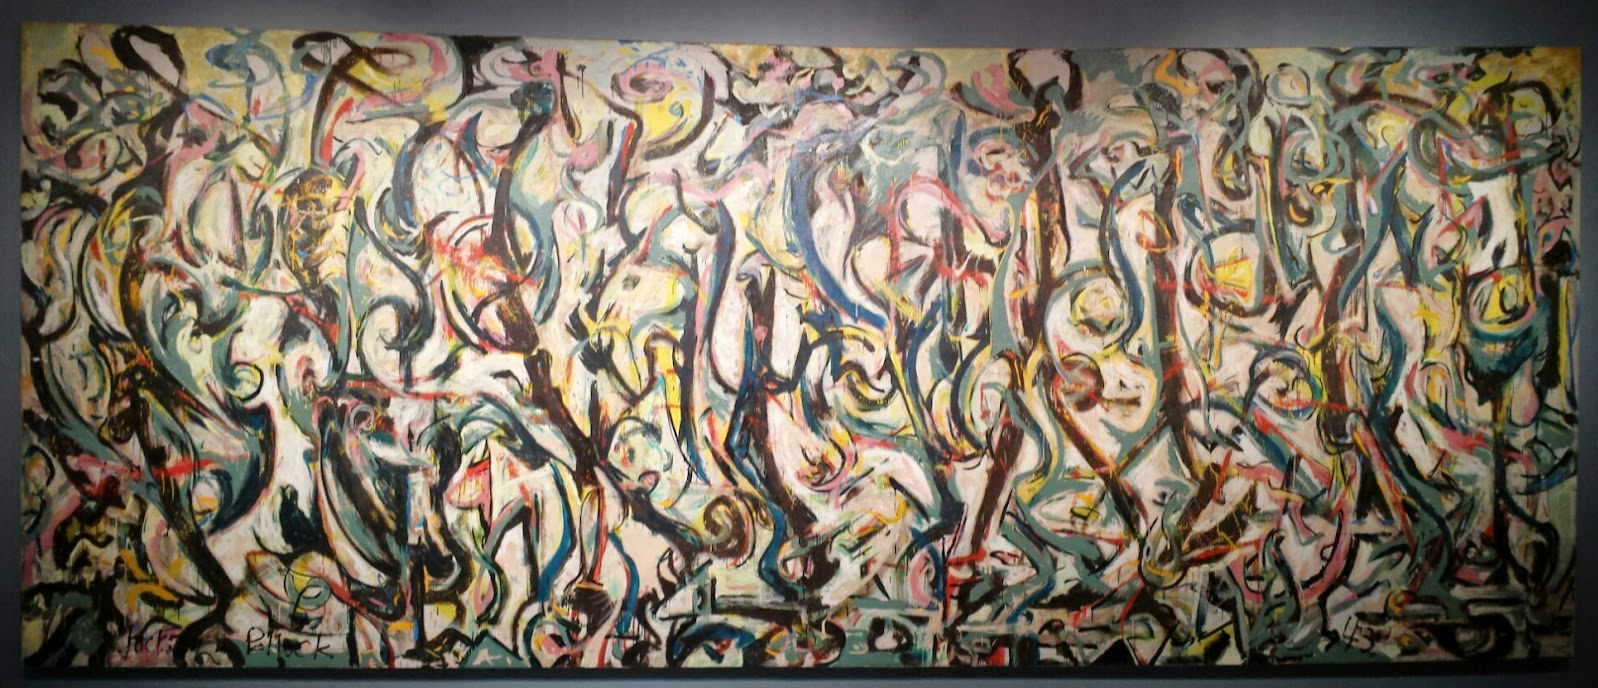 History and culture by bicycle jackson pollock mural for Mural jackson pollock